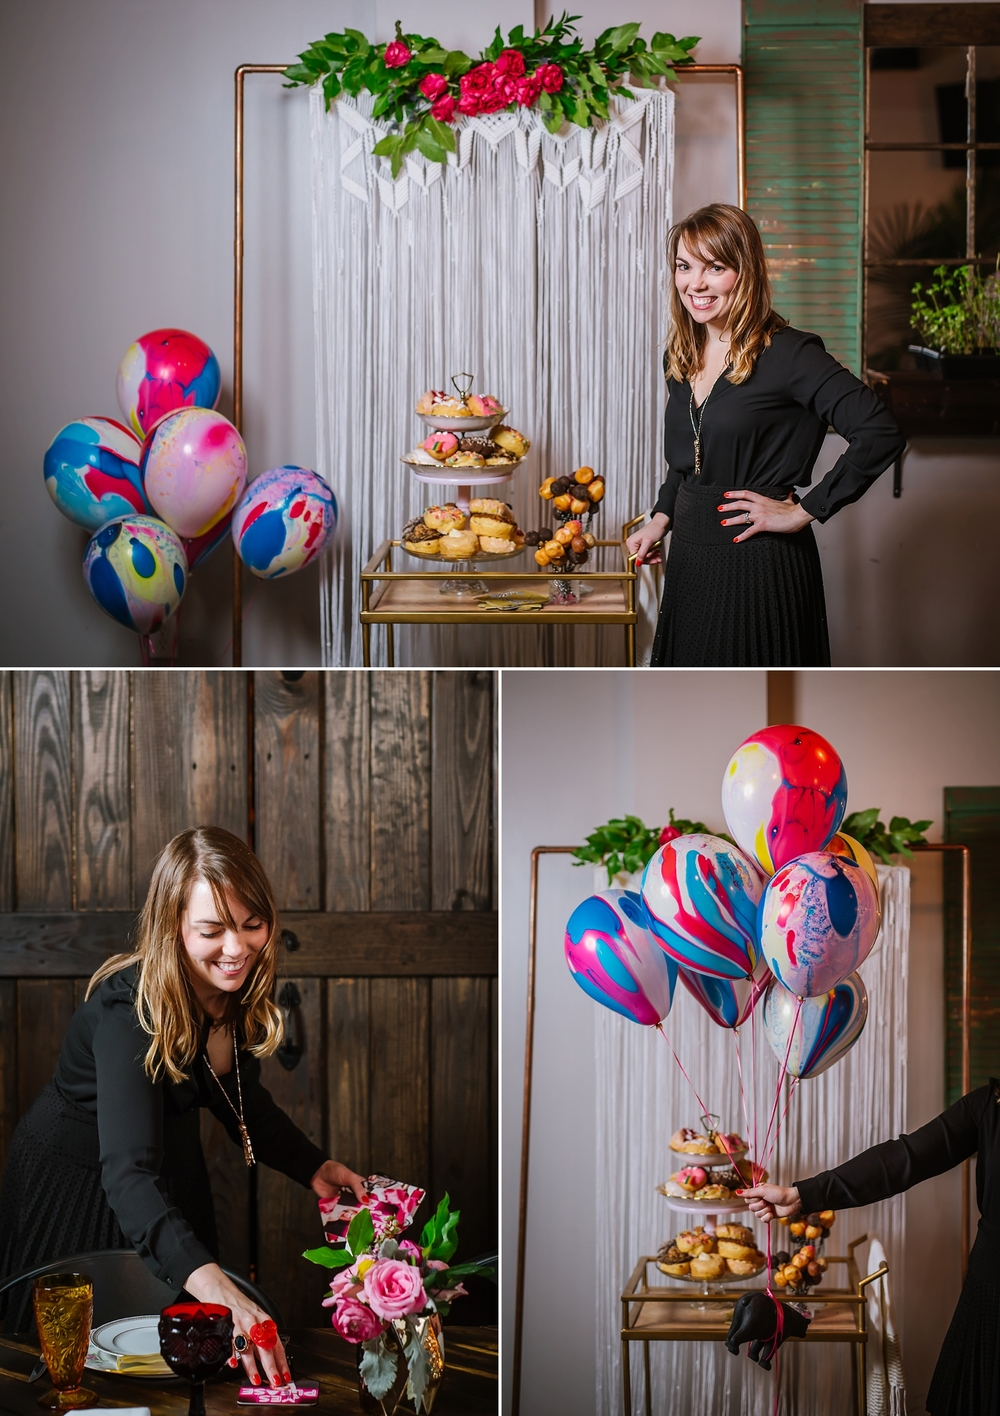 tampa-event-photographer-styled-party-ideas-oh-hello_0008.jpg